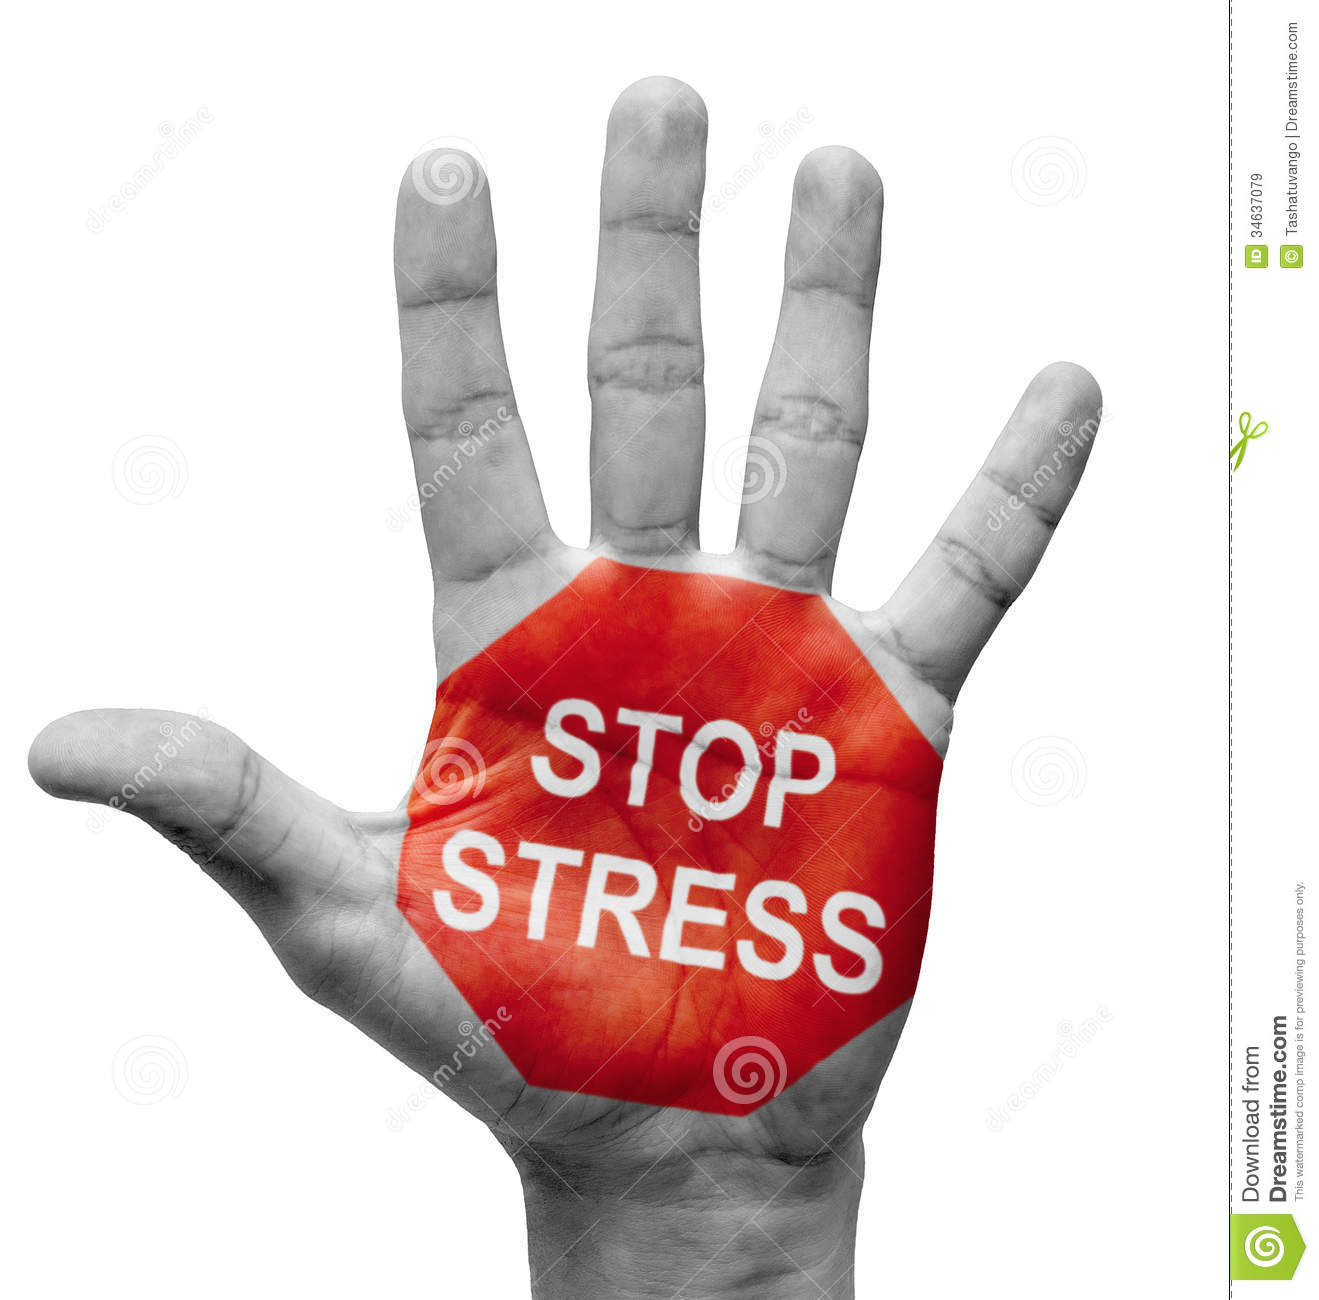 Stop Stress Concept. Royalty Free Stock Images - Image: 34637079